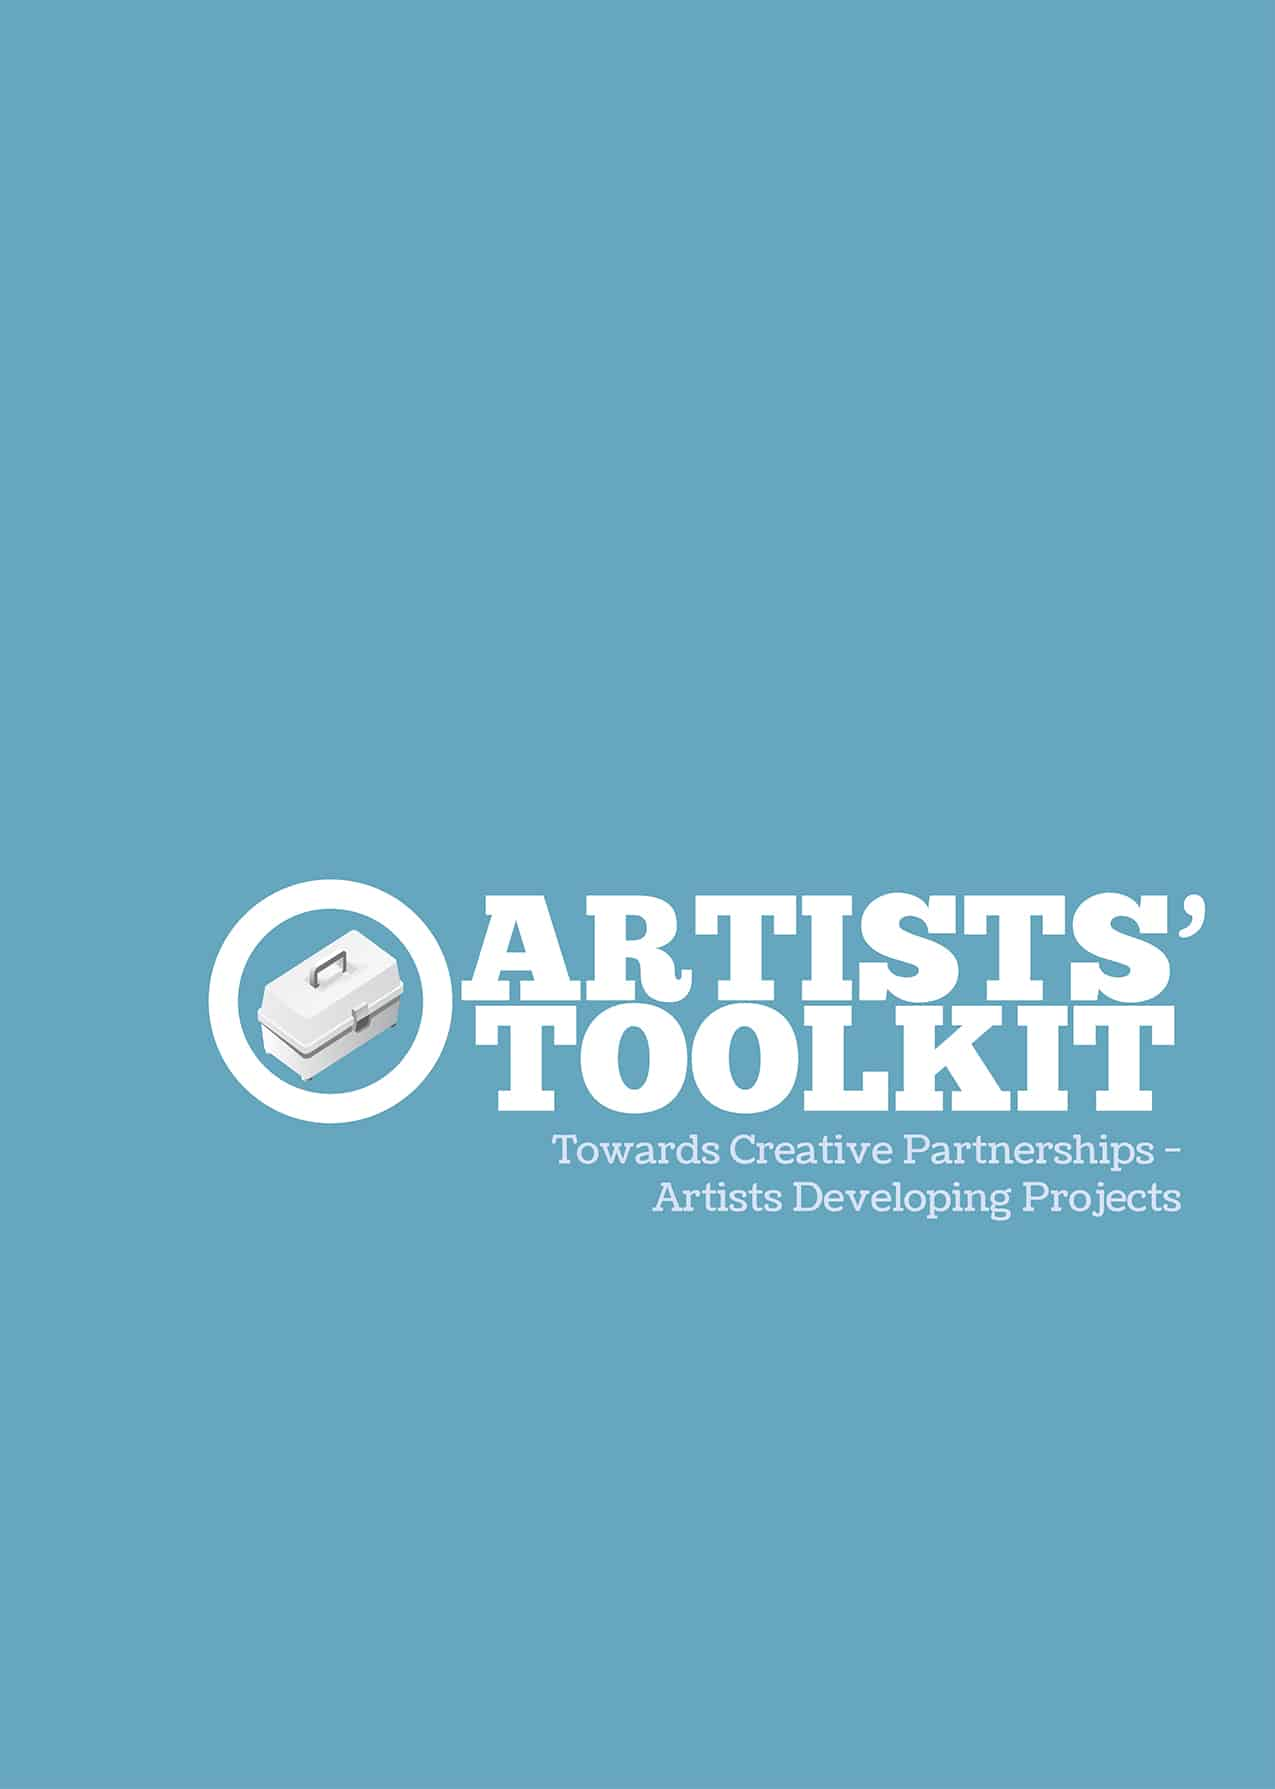 Artists Toolkit Cover Image